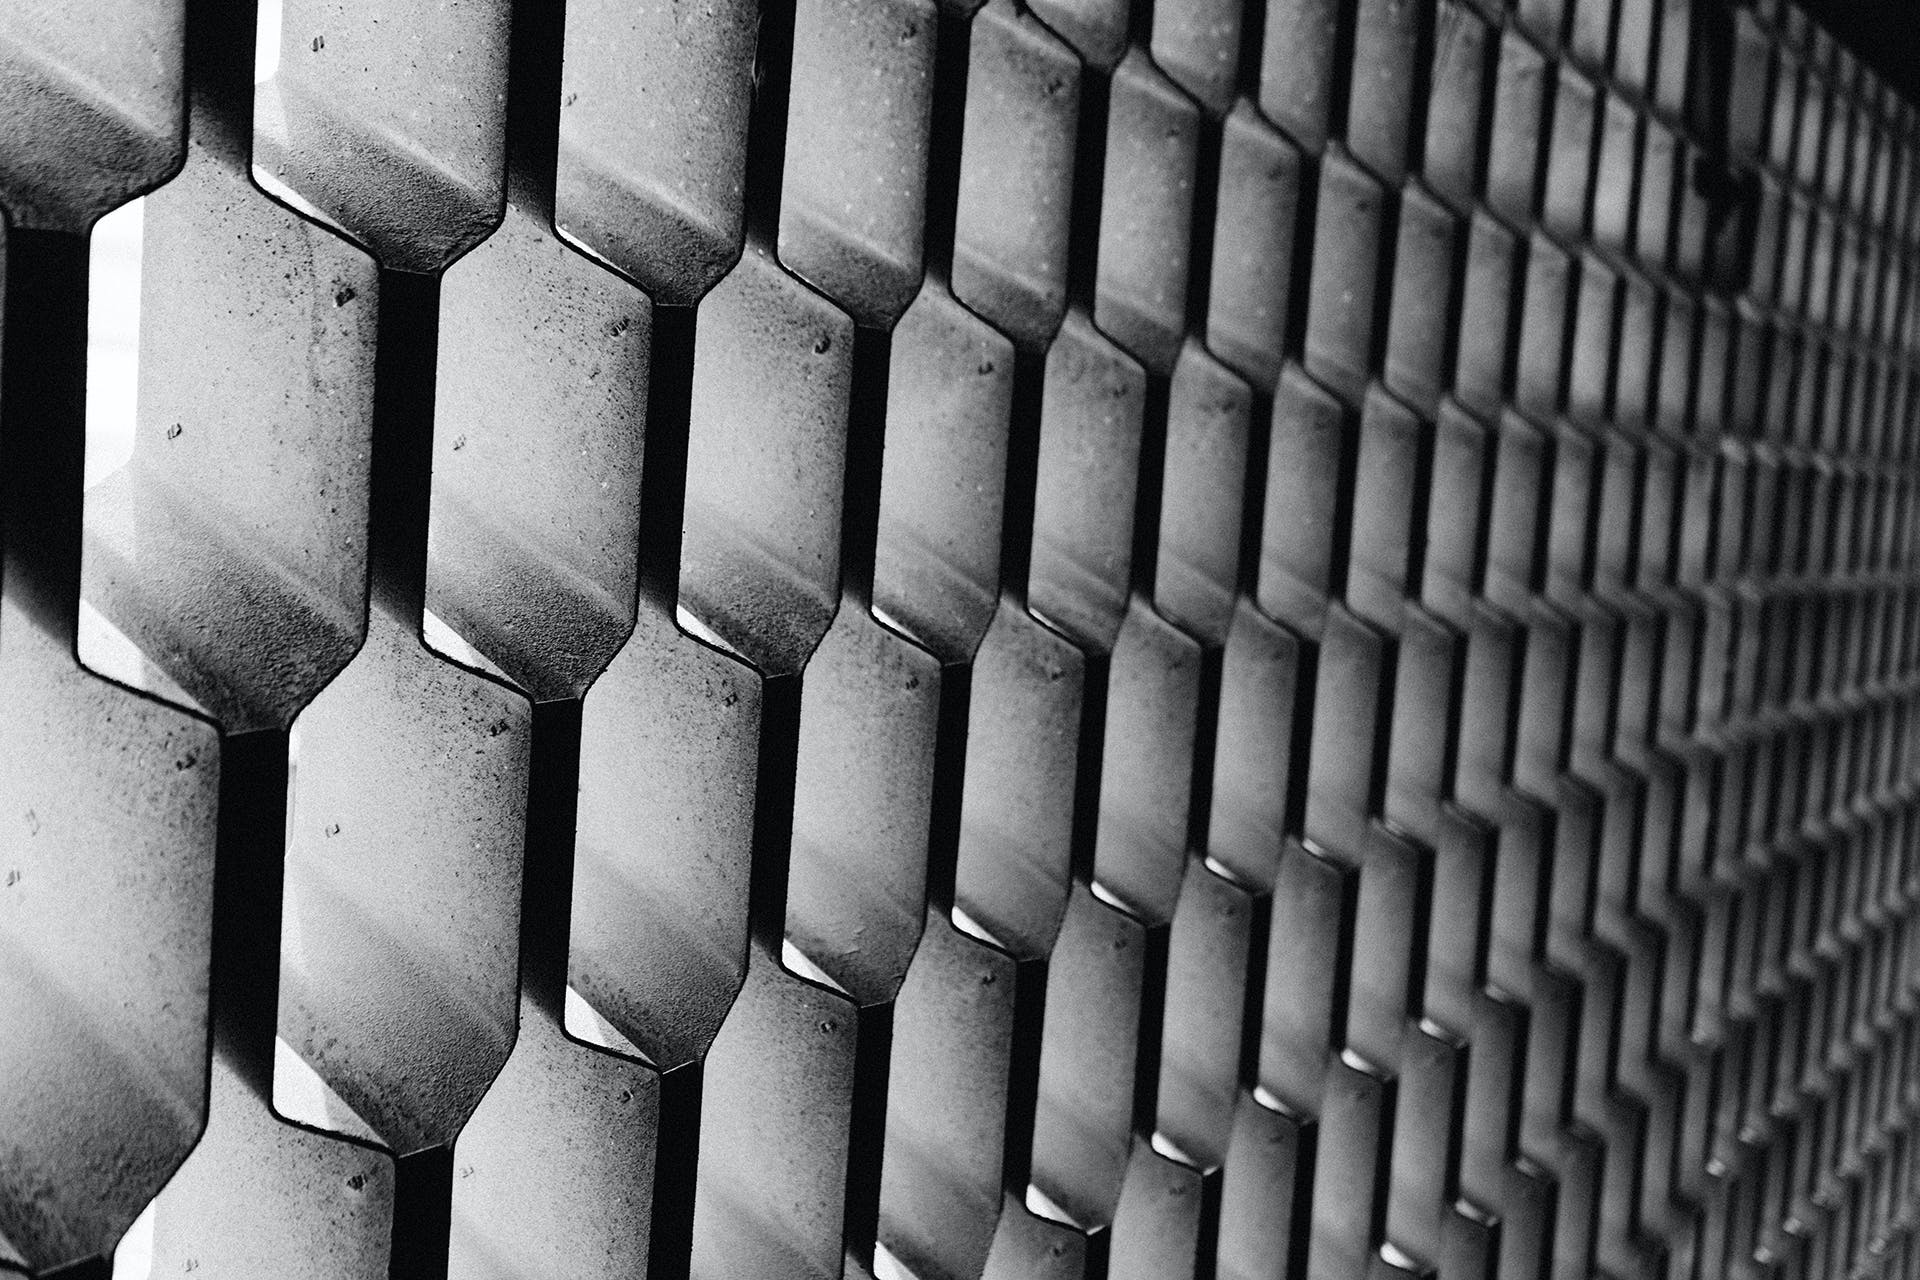 abstract, honeycomb, metal